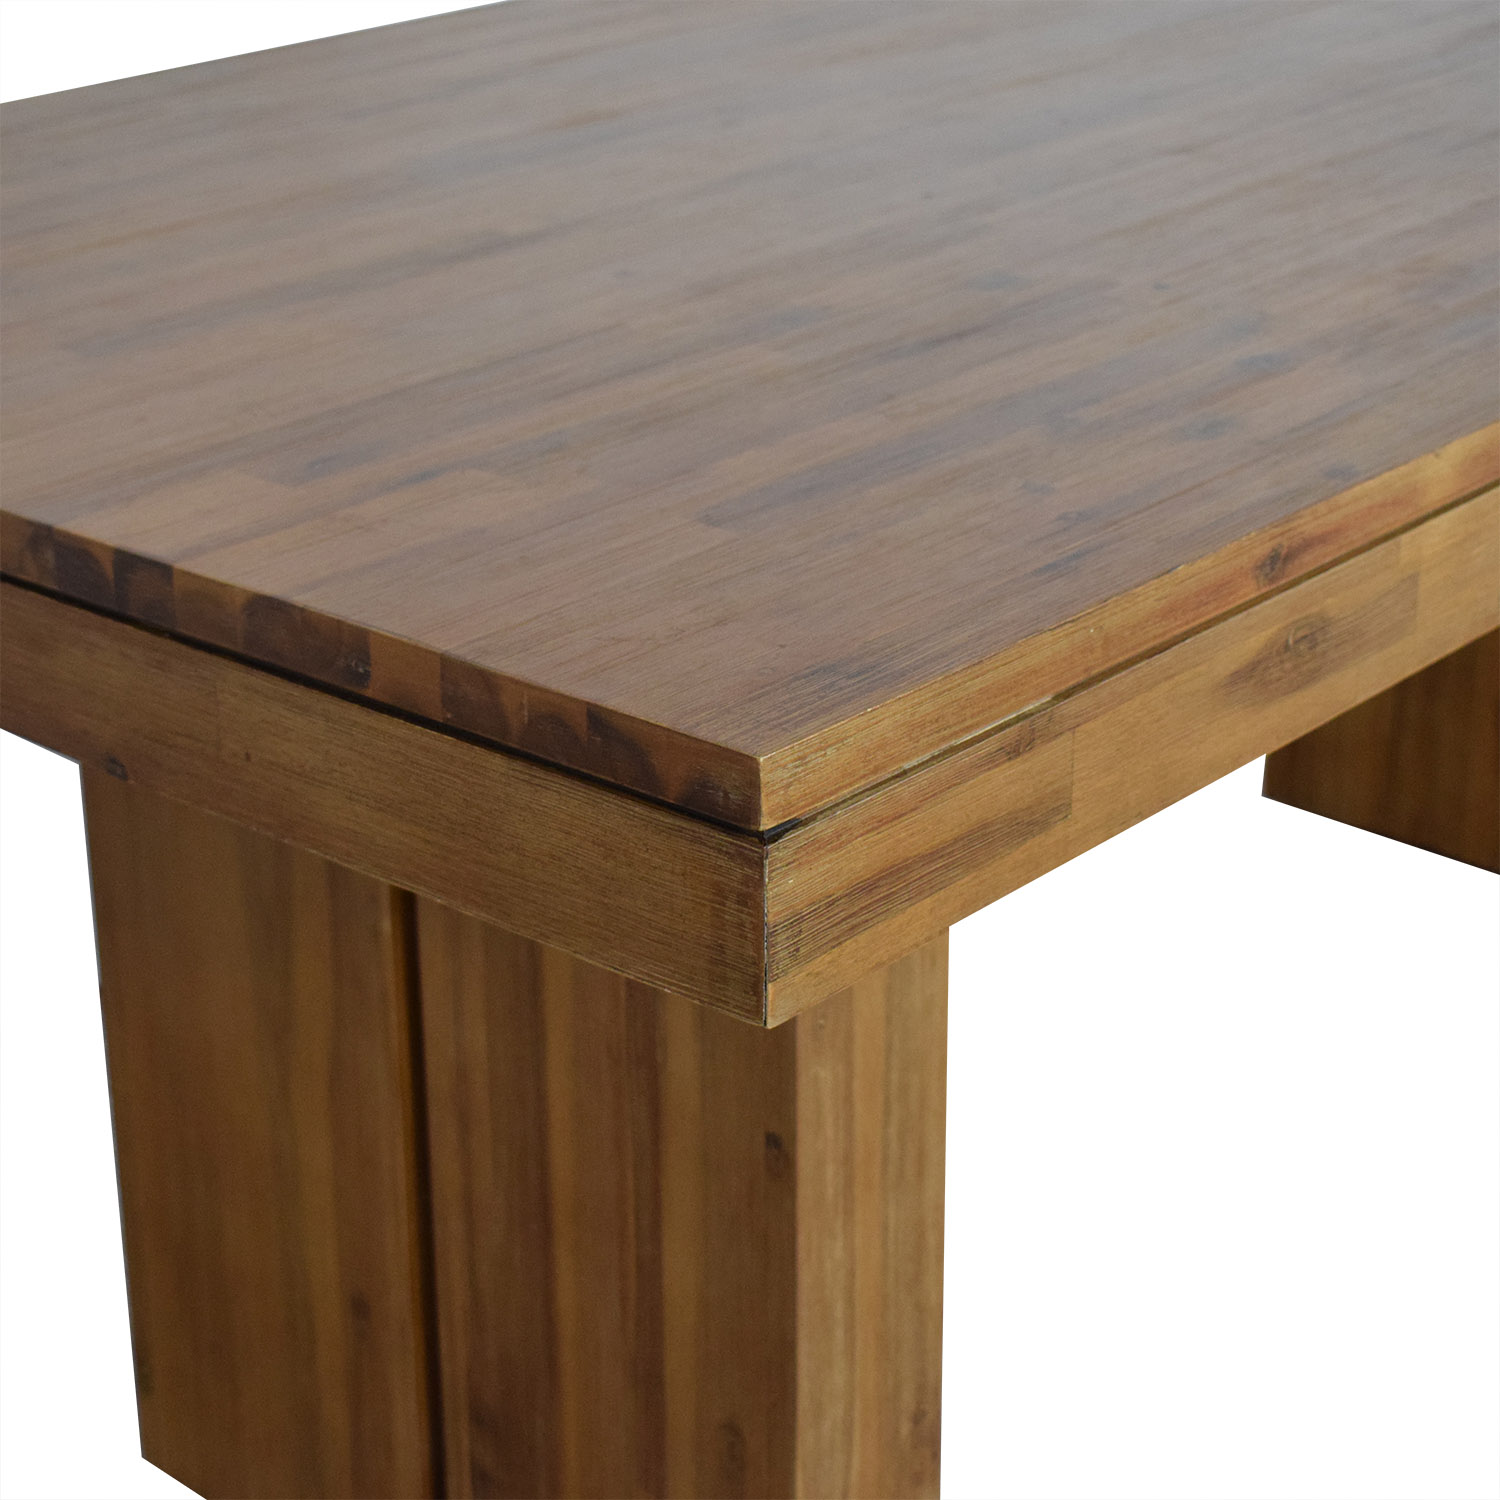 Cresent Furniture Cresent Fine Furniture Dining Table dimensions